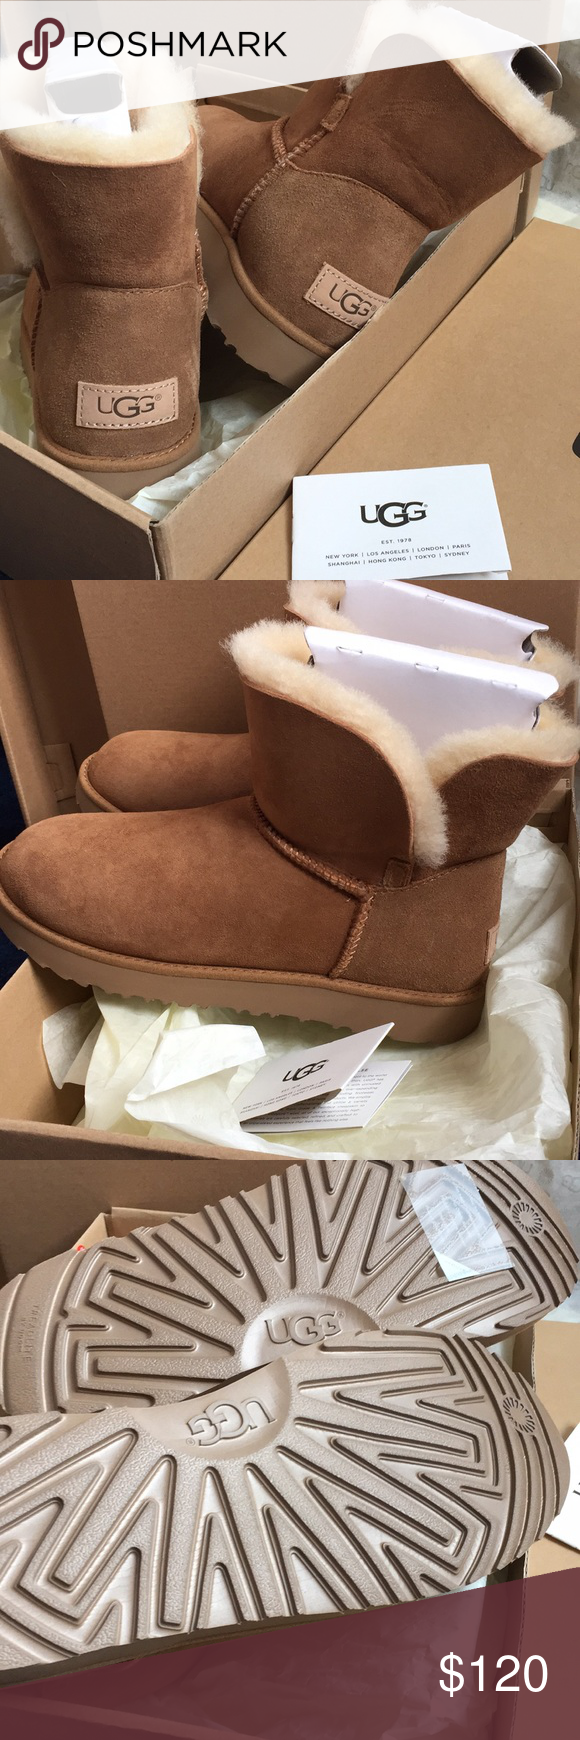 Are Uggs Made In Vietnam : vietnam, Classic, Uggs,, Womens, Boots